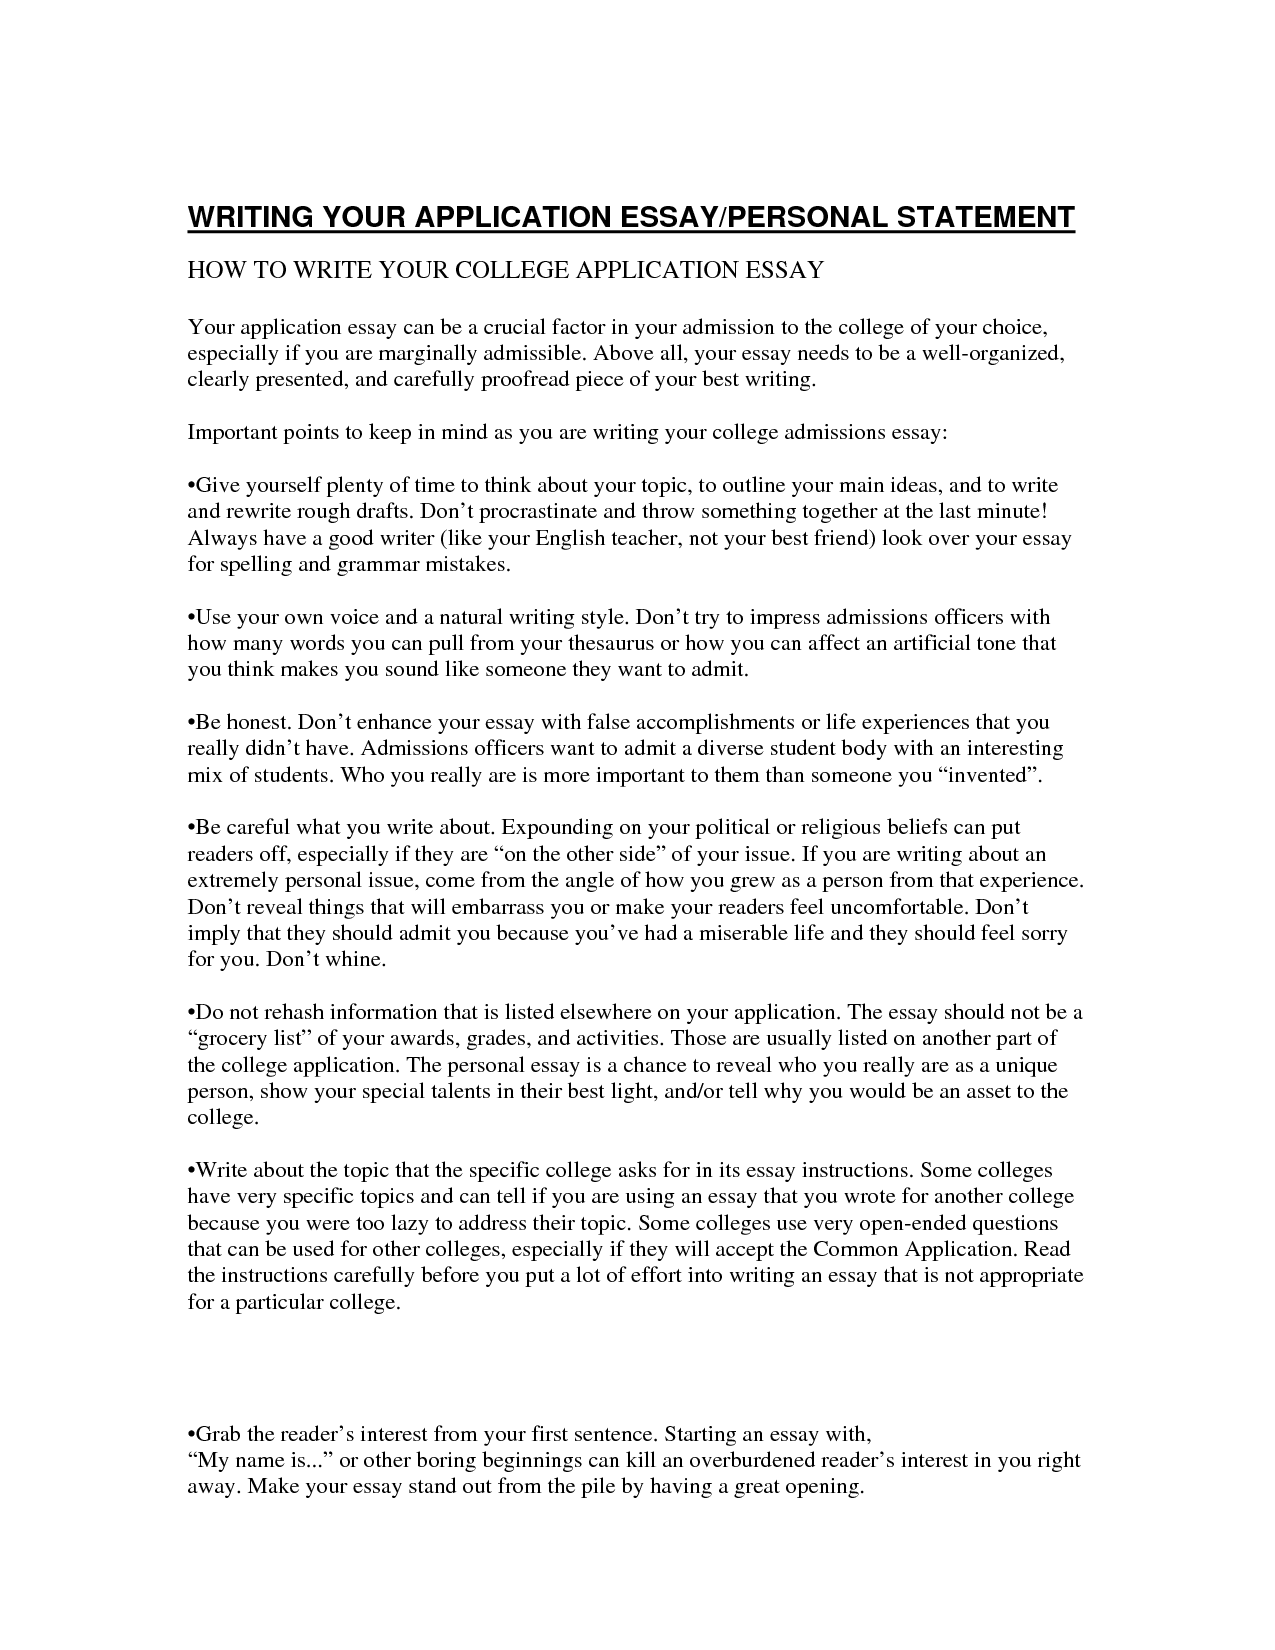 Interest in college essay sample